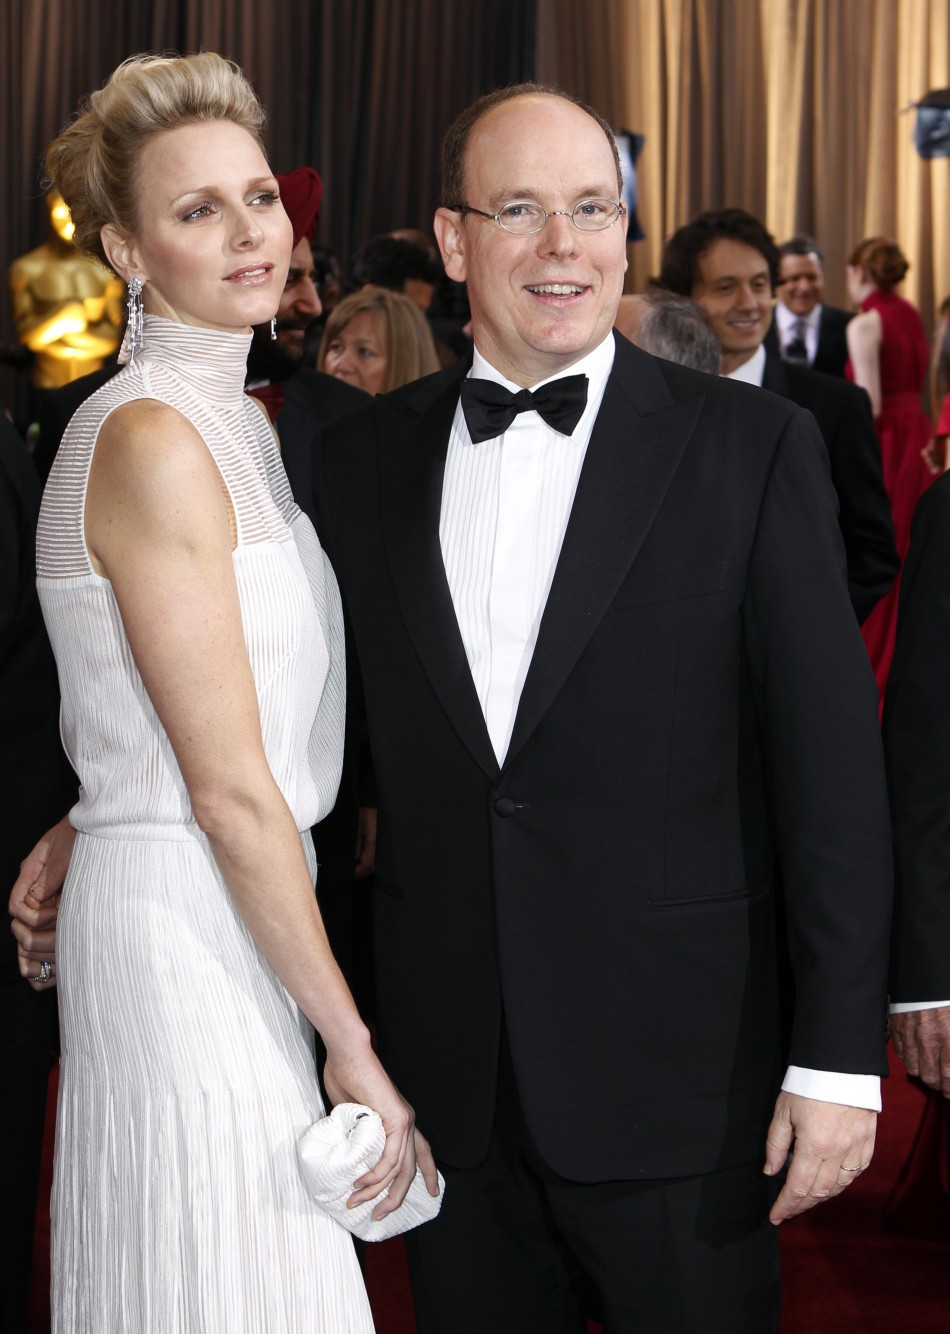 Prince Albert of Monaco and wife Princess Charlene (L) arrive at the 84th Academy Awards in Hollywood